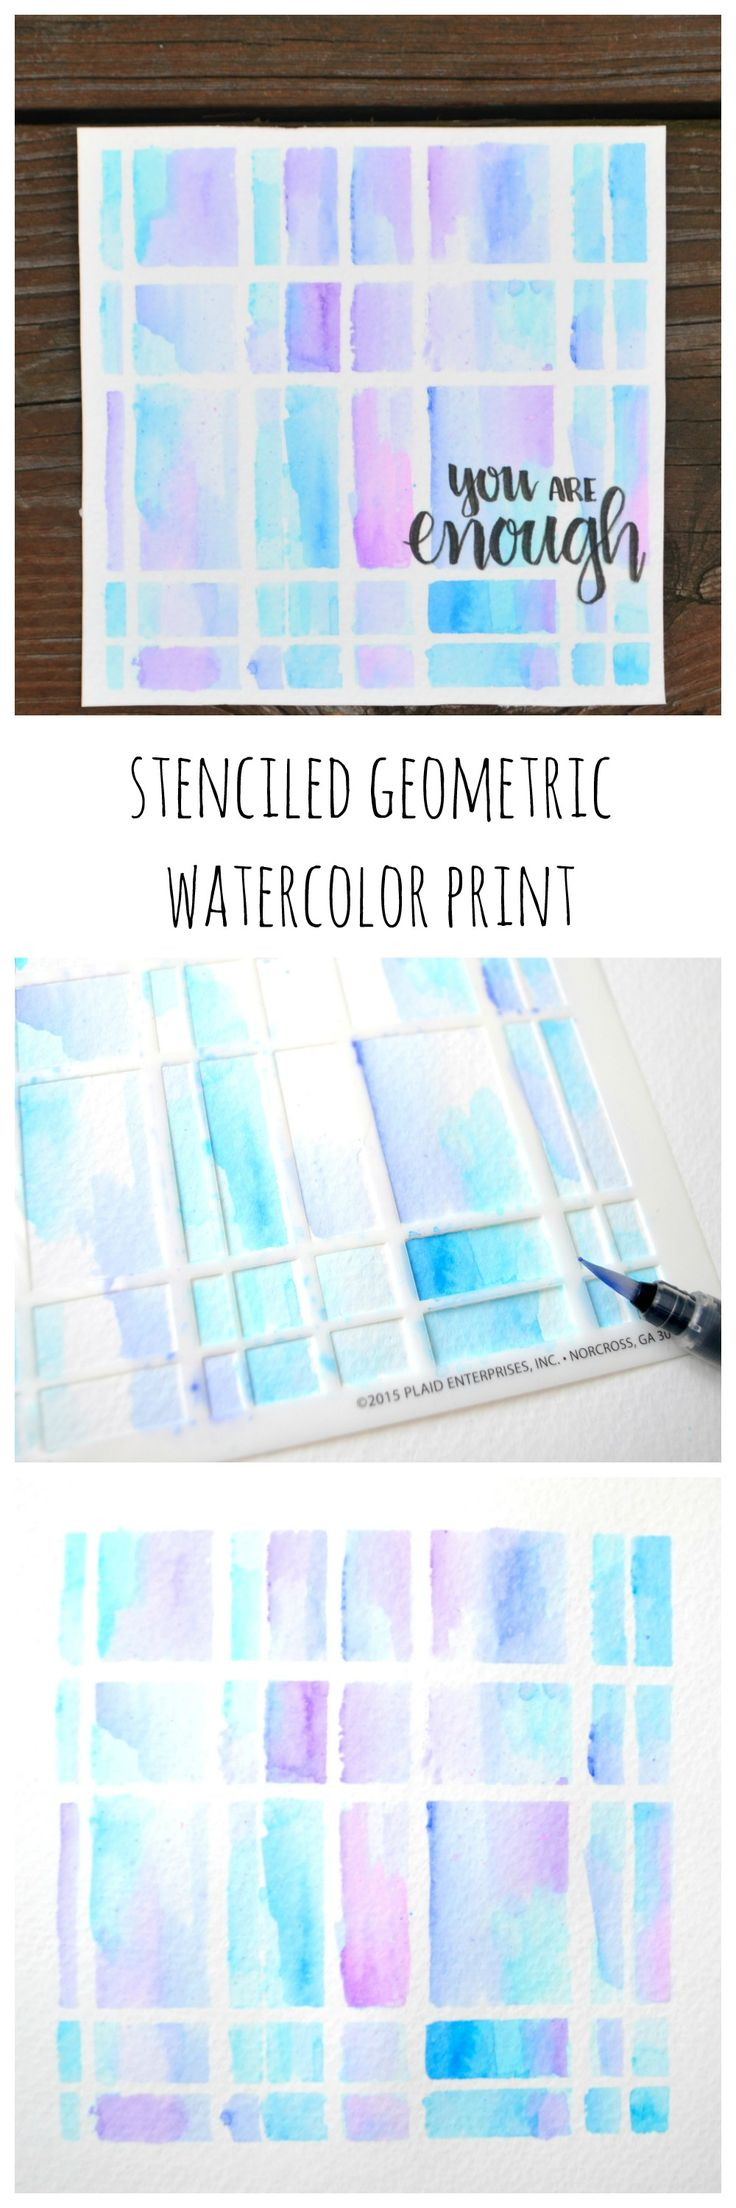 Stenciled Geometric Watercolor Print using Tombow markers (Pssst...no watercolors were used in the making of this. Come see how to use your markers to create a watercolor look!) | One Artsy Mama for dawnnicoledesigns.com